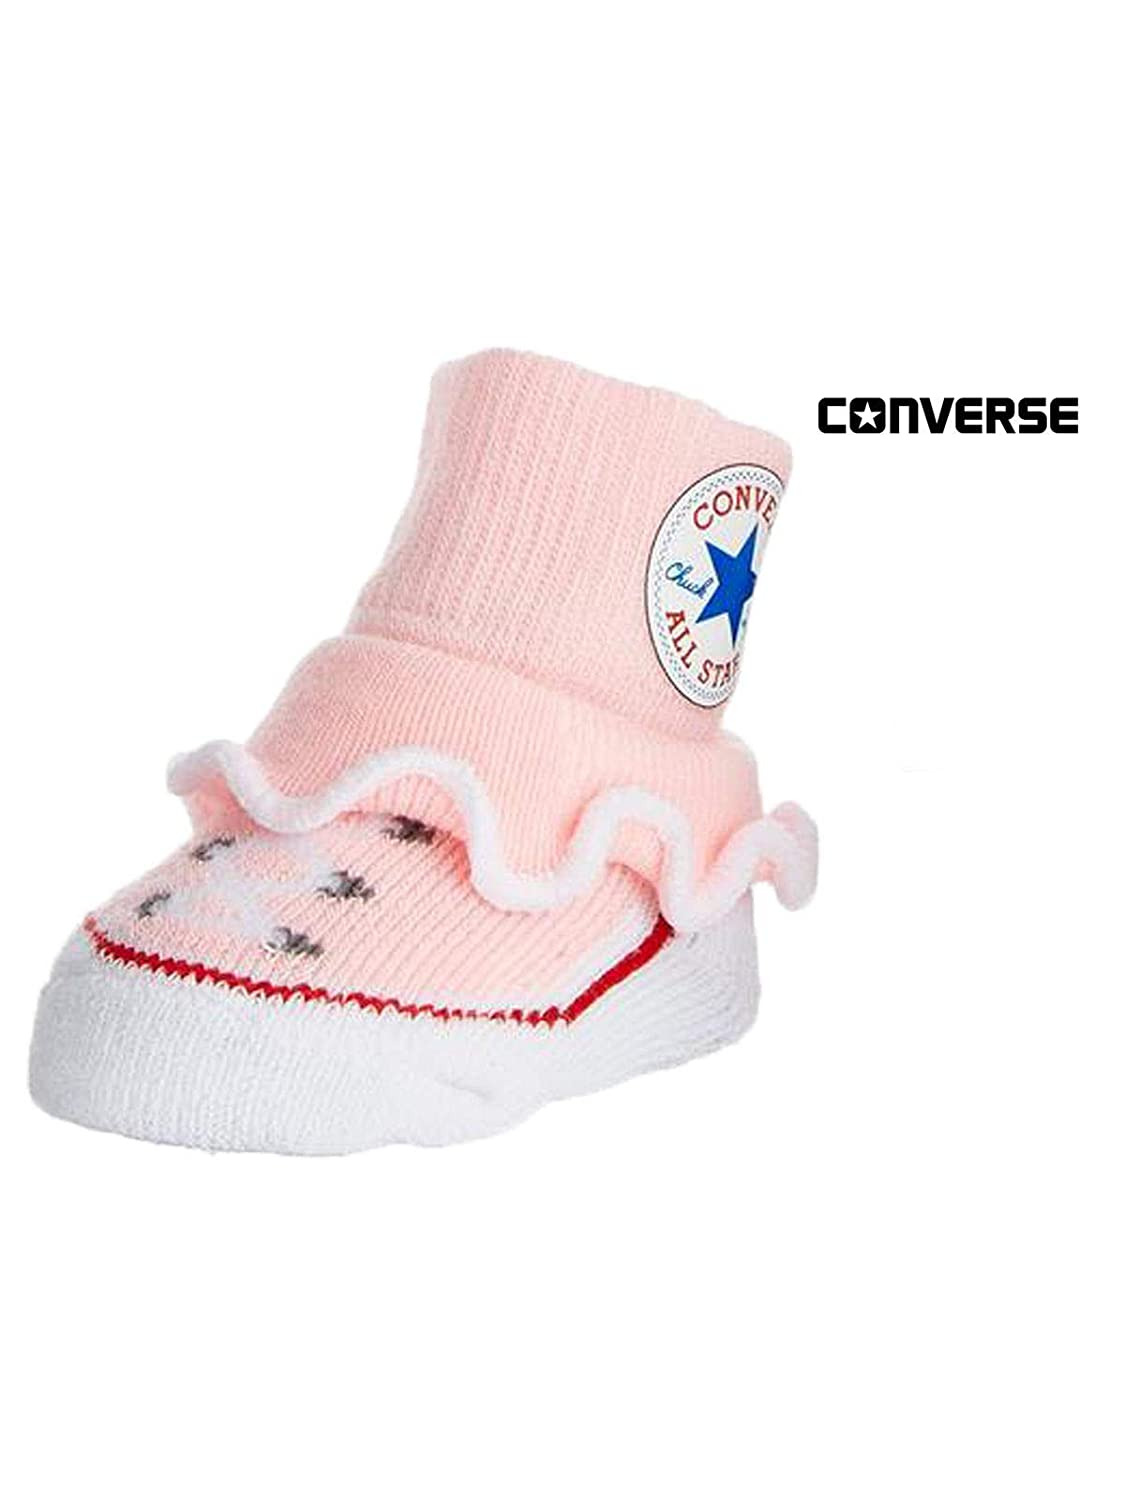 ad8c849138c1 Amazon.com  Converse Baby Booties Set for Infant Boys and Girls (0-6 Months)   Clothing